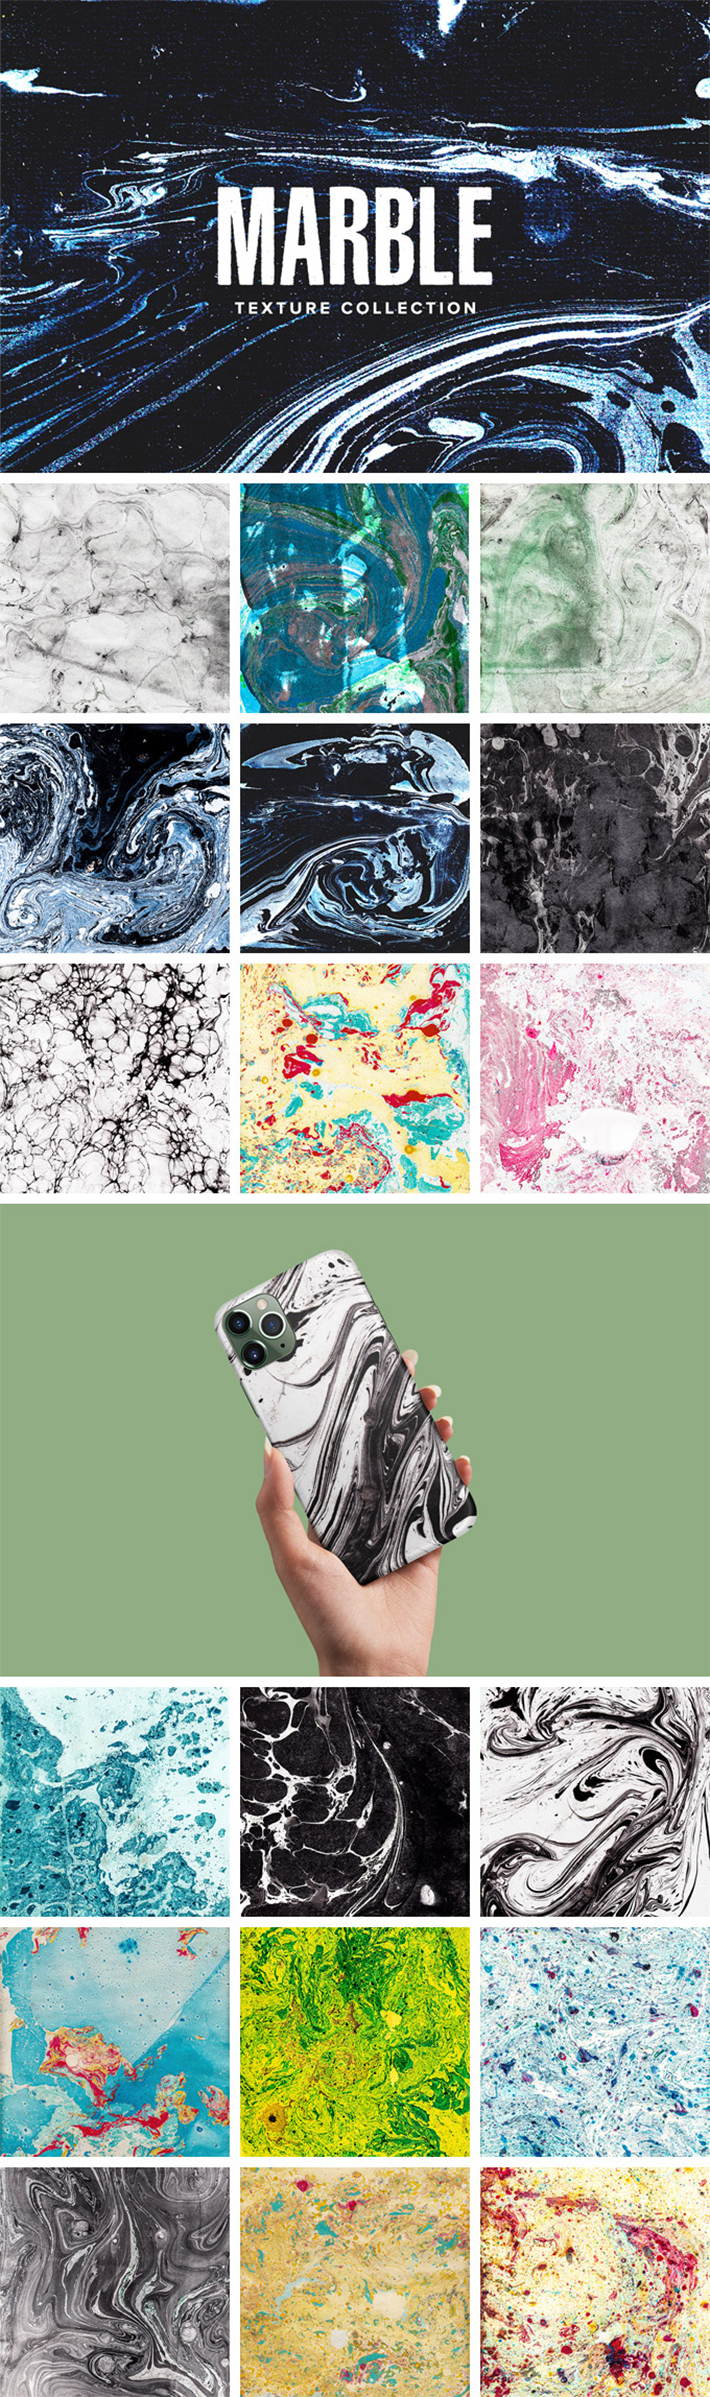 Awesome Marble Texture